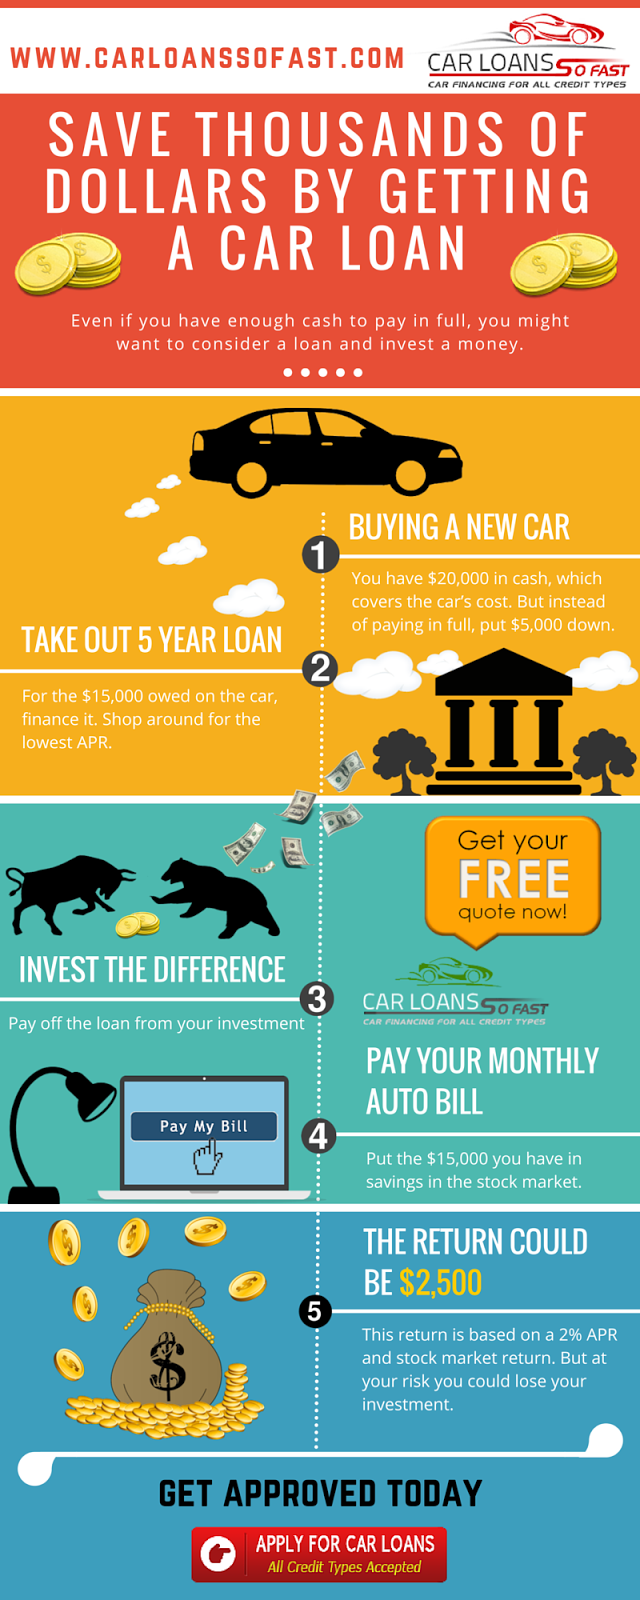 Save Thousands of Dollars by Getting a Car Loan Instead of Buying with Cash